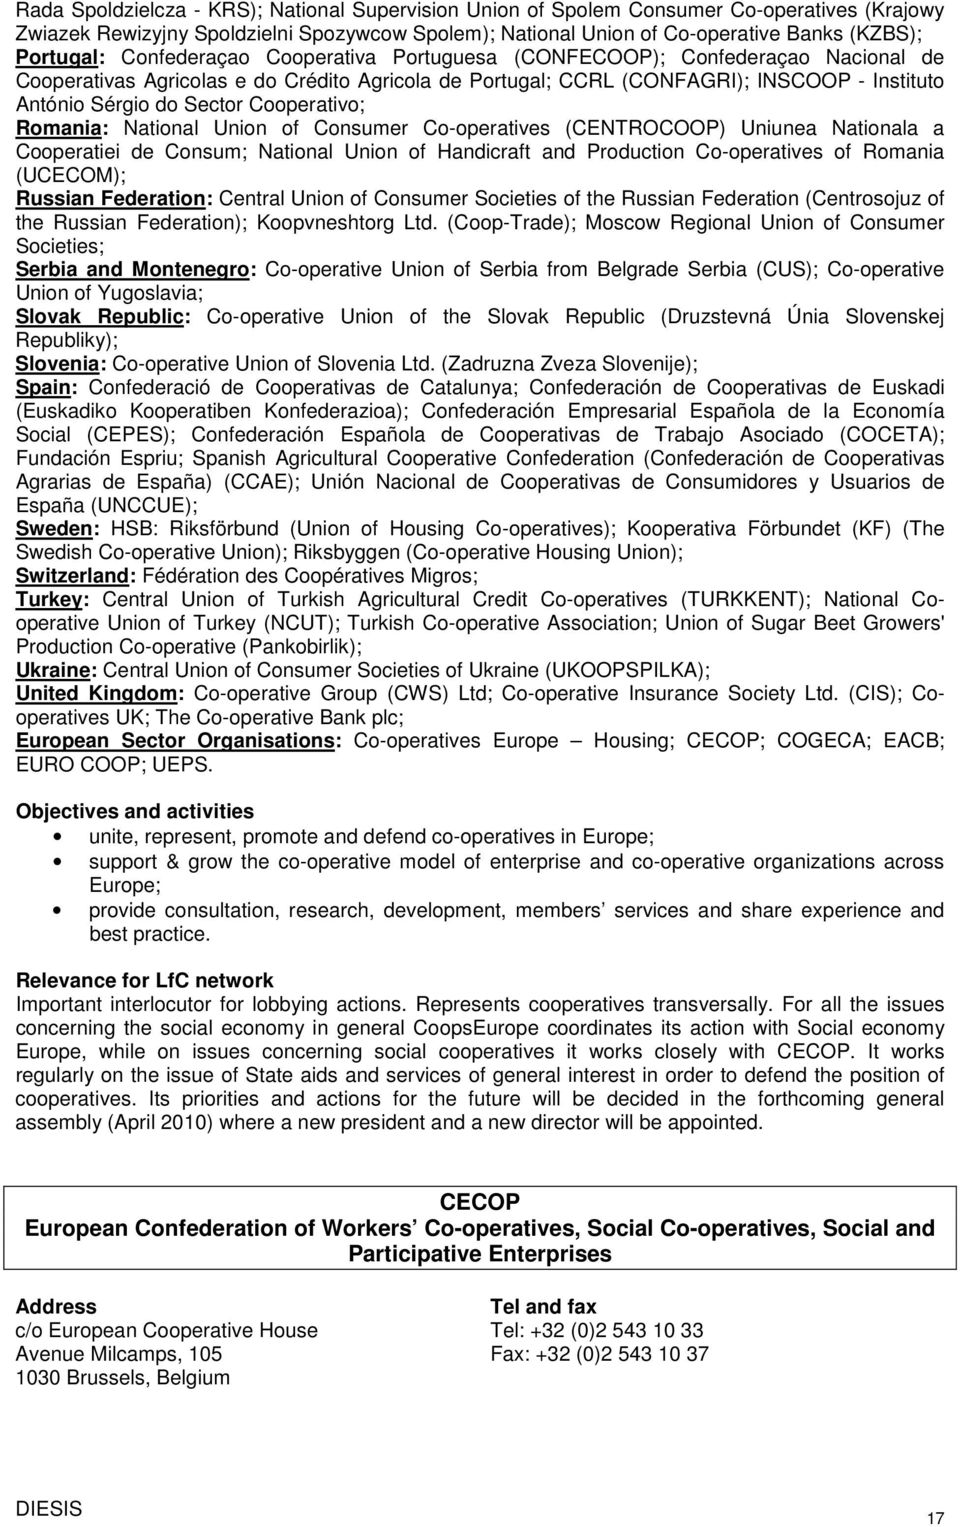 Cooperativo; Romania: National Union of Consumer Co-operatives (CENTROCOOP) Uniunea Nationala a Cooperatiei de Consum; National Union of Handicraft and Production Co-operatives of Romania (UCECOM);